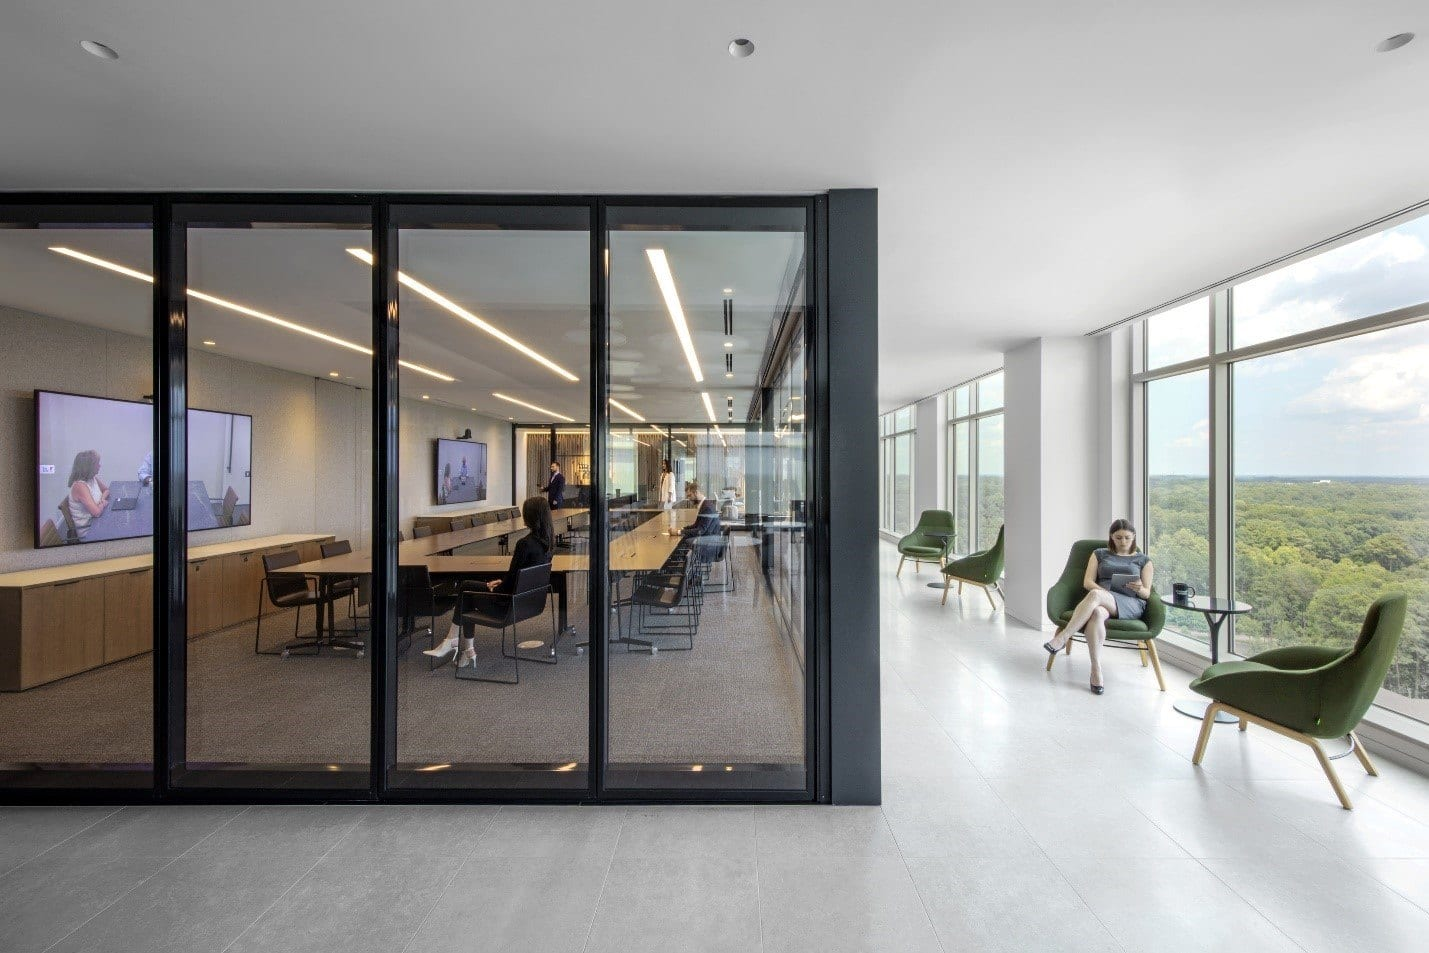 A collaborative meeting space with nearby informal work areas